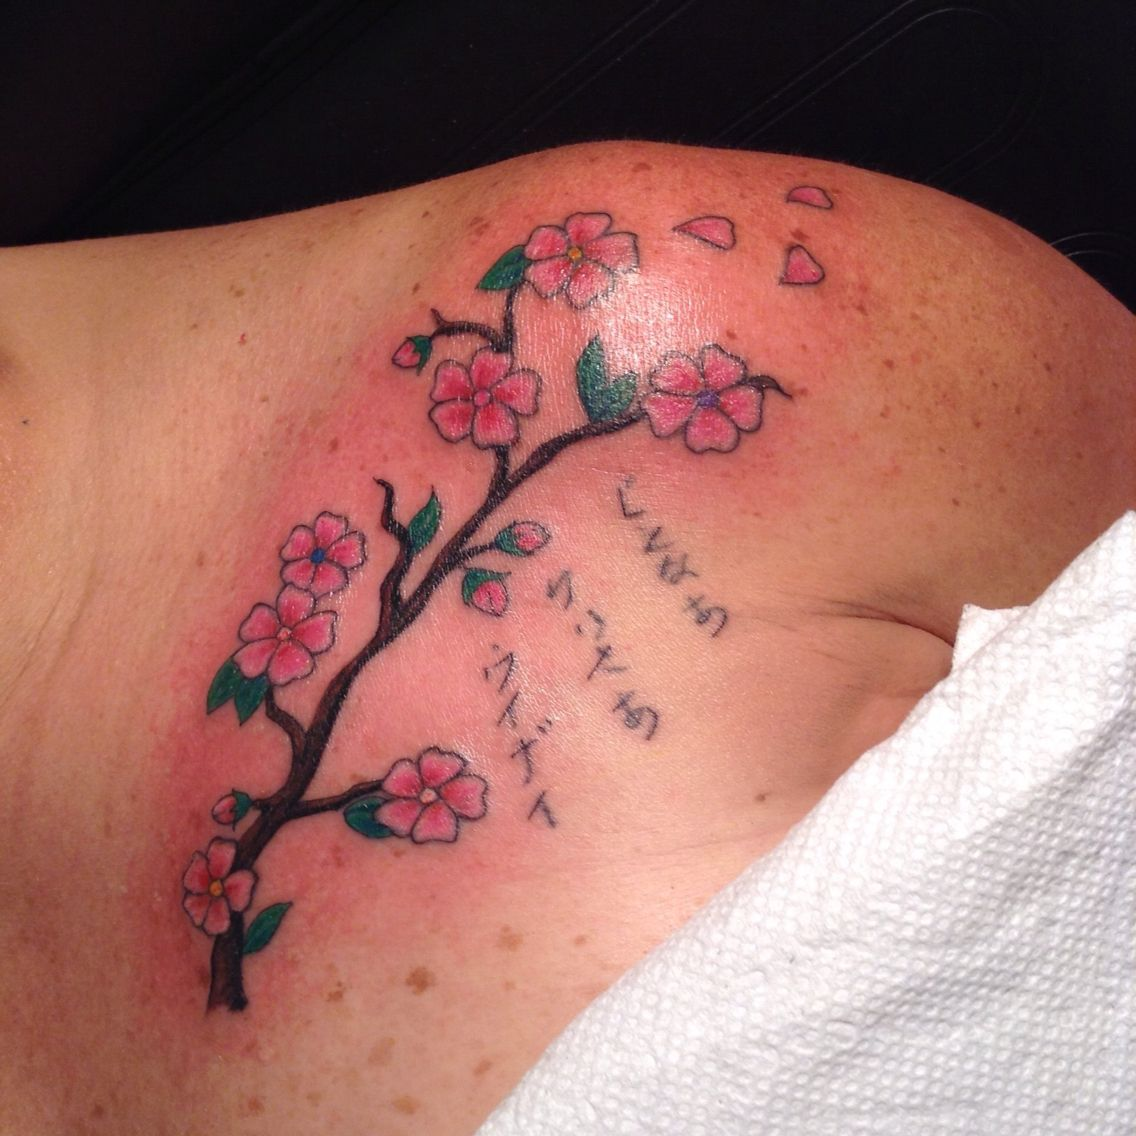 After touch up tattoos touch up watercolor tattoo